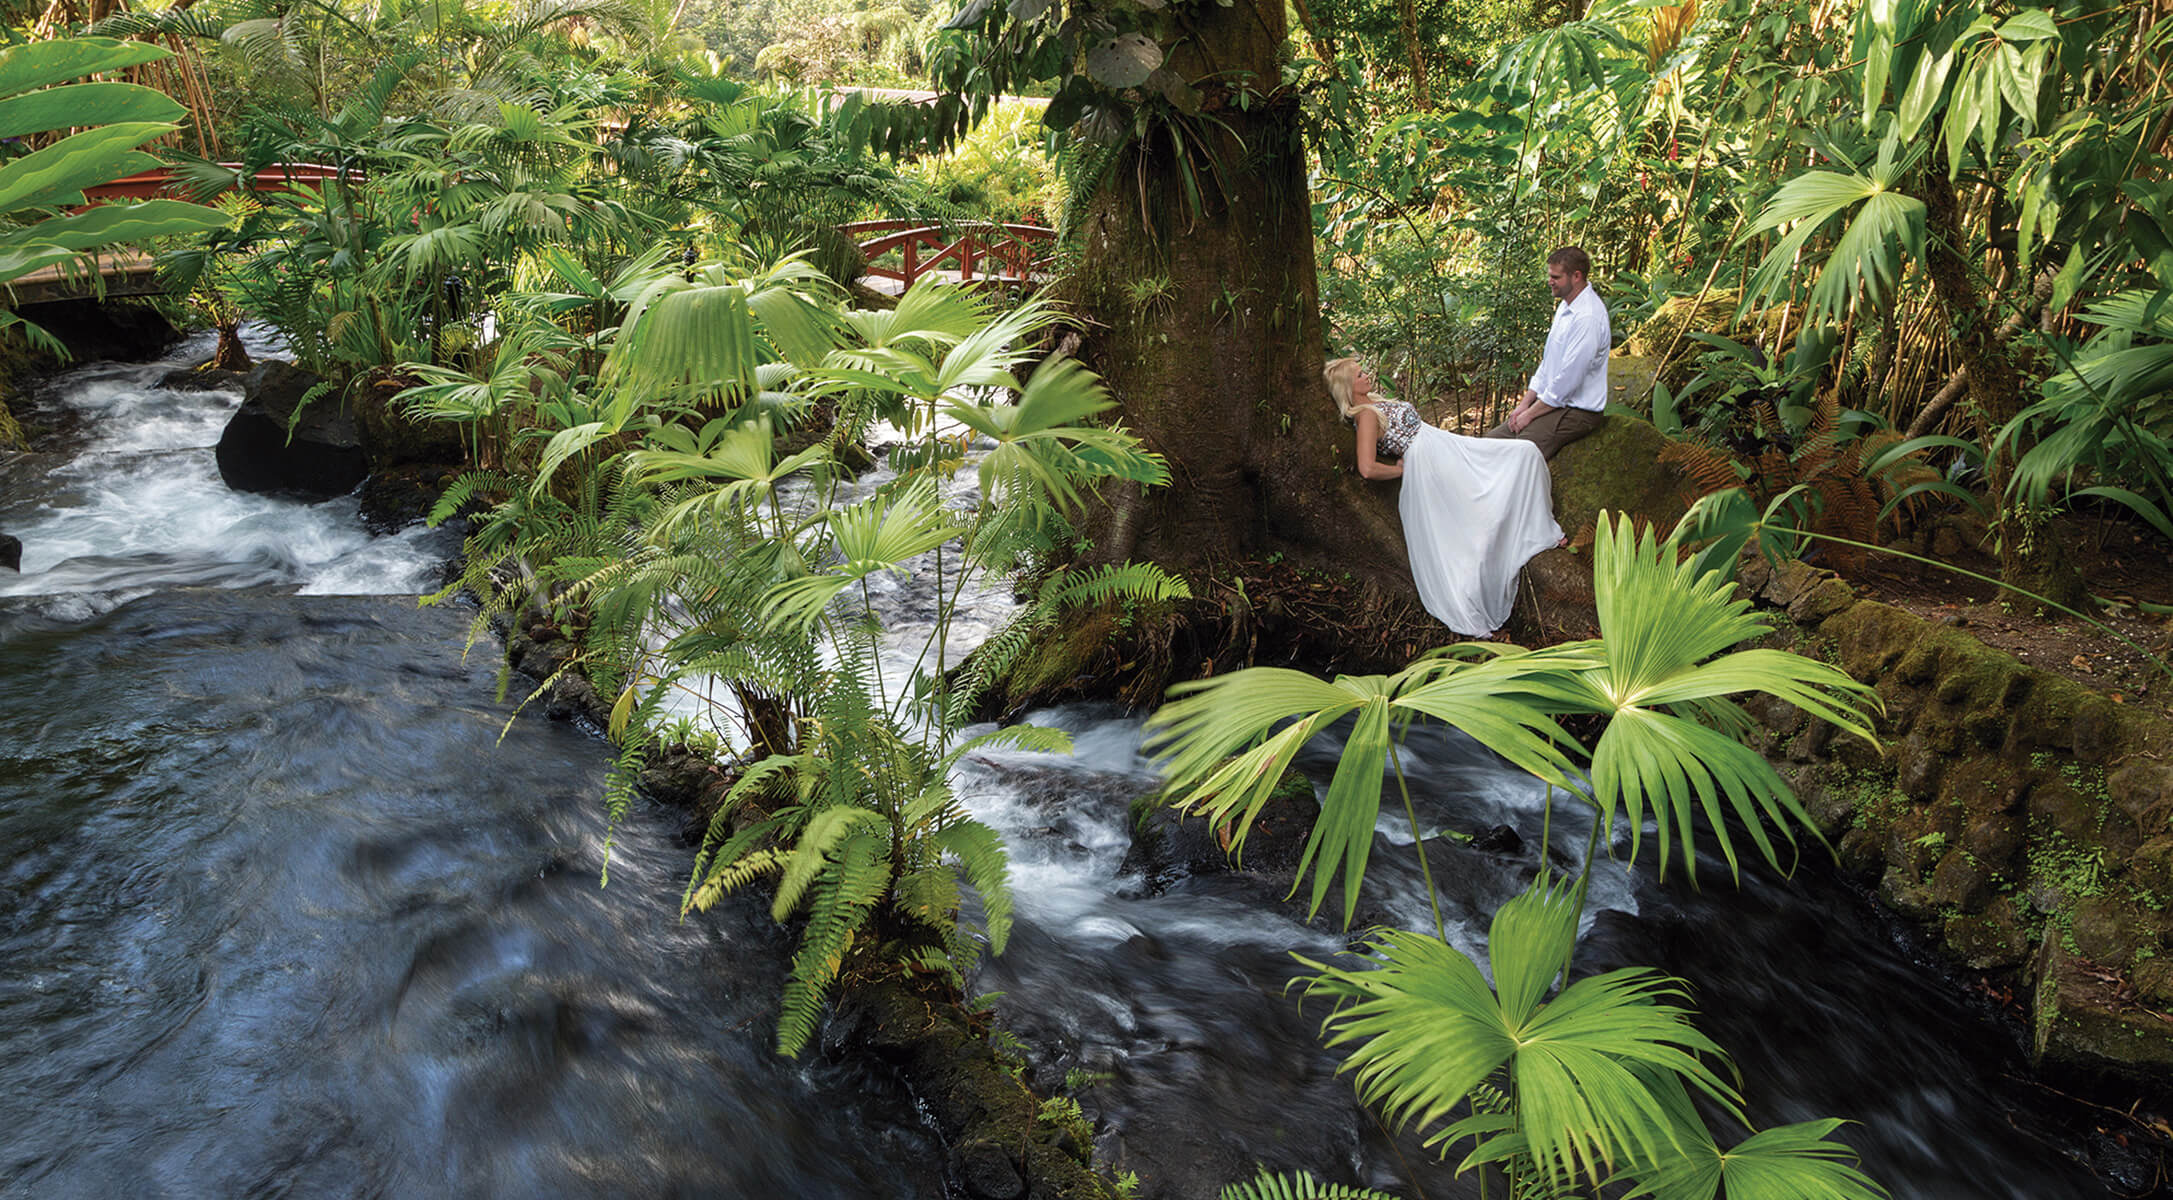 couple sitting next to waterfall and leaning up against large tree surrounded by rainforest wildlife